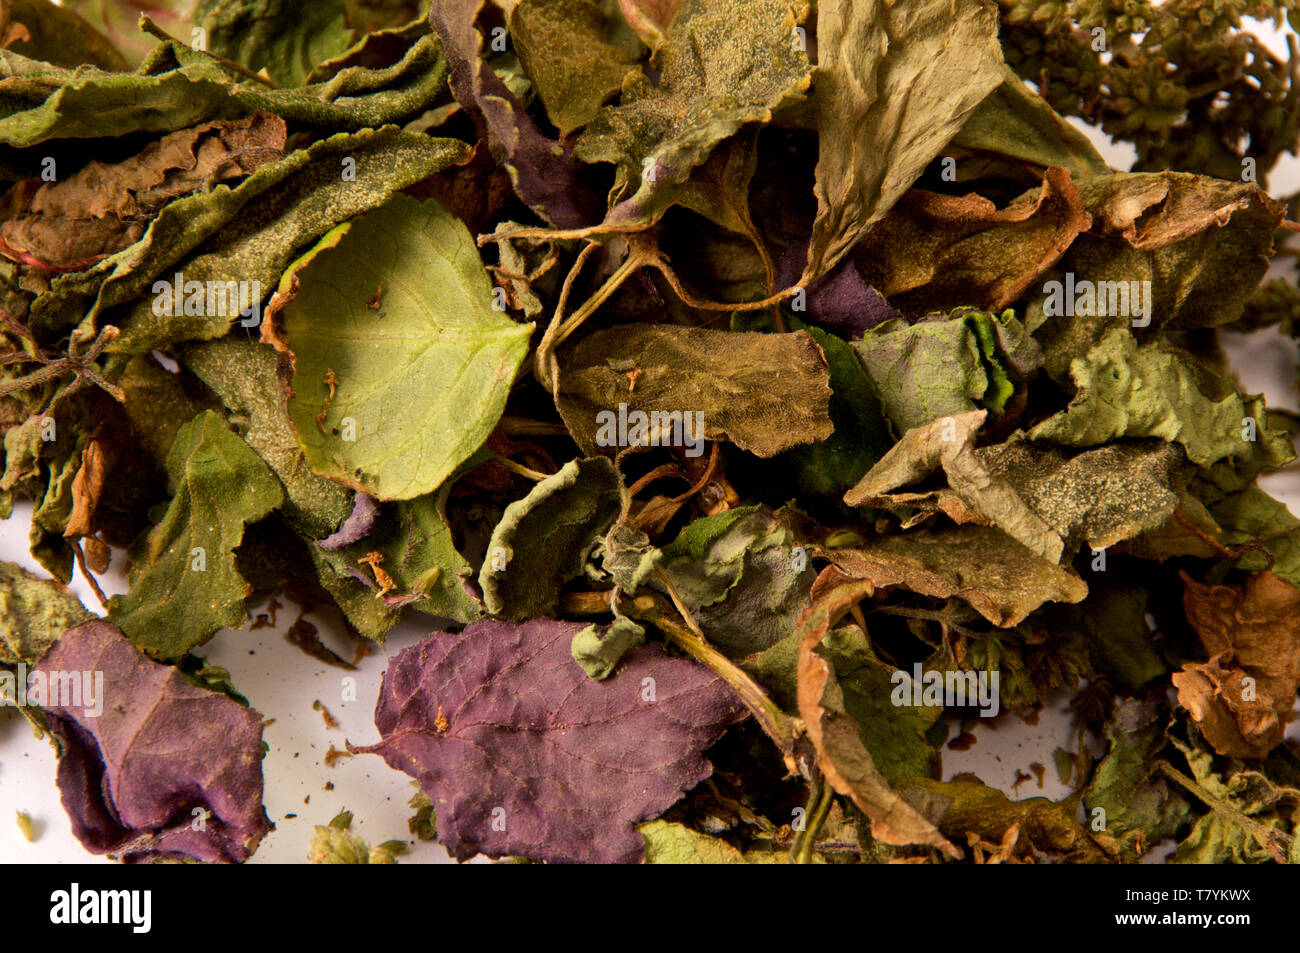 Close up detailed image of  dried colorful Patchouli, Pogostemon cablin, leaves and flowers used for aromatherapy and incense. Member of the mint dead - Stock Image